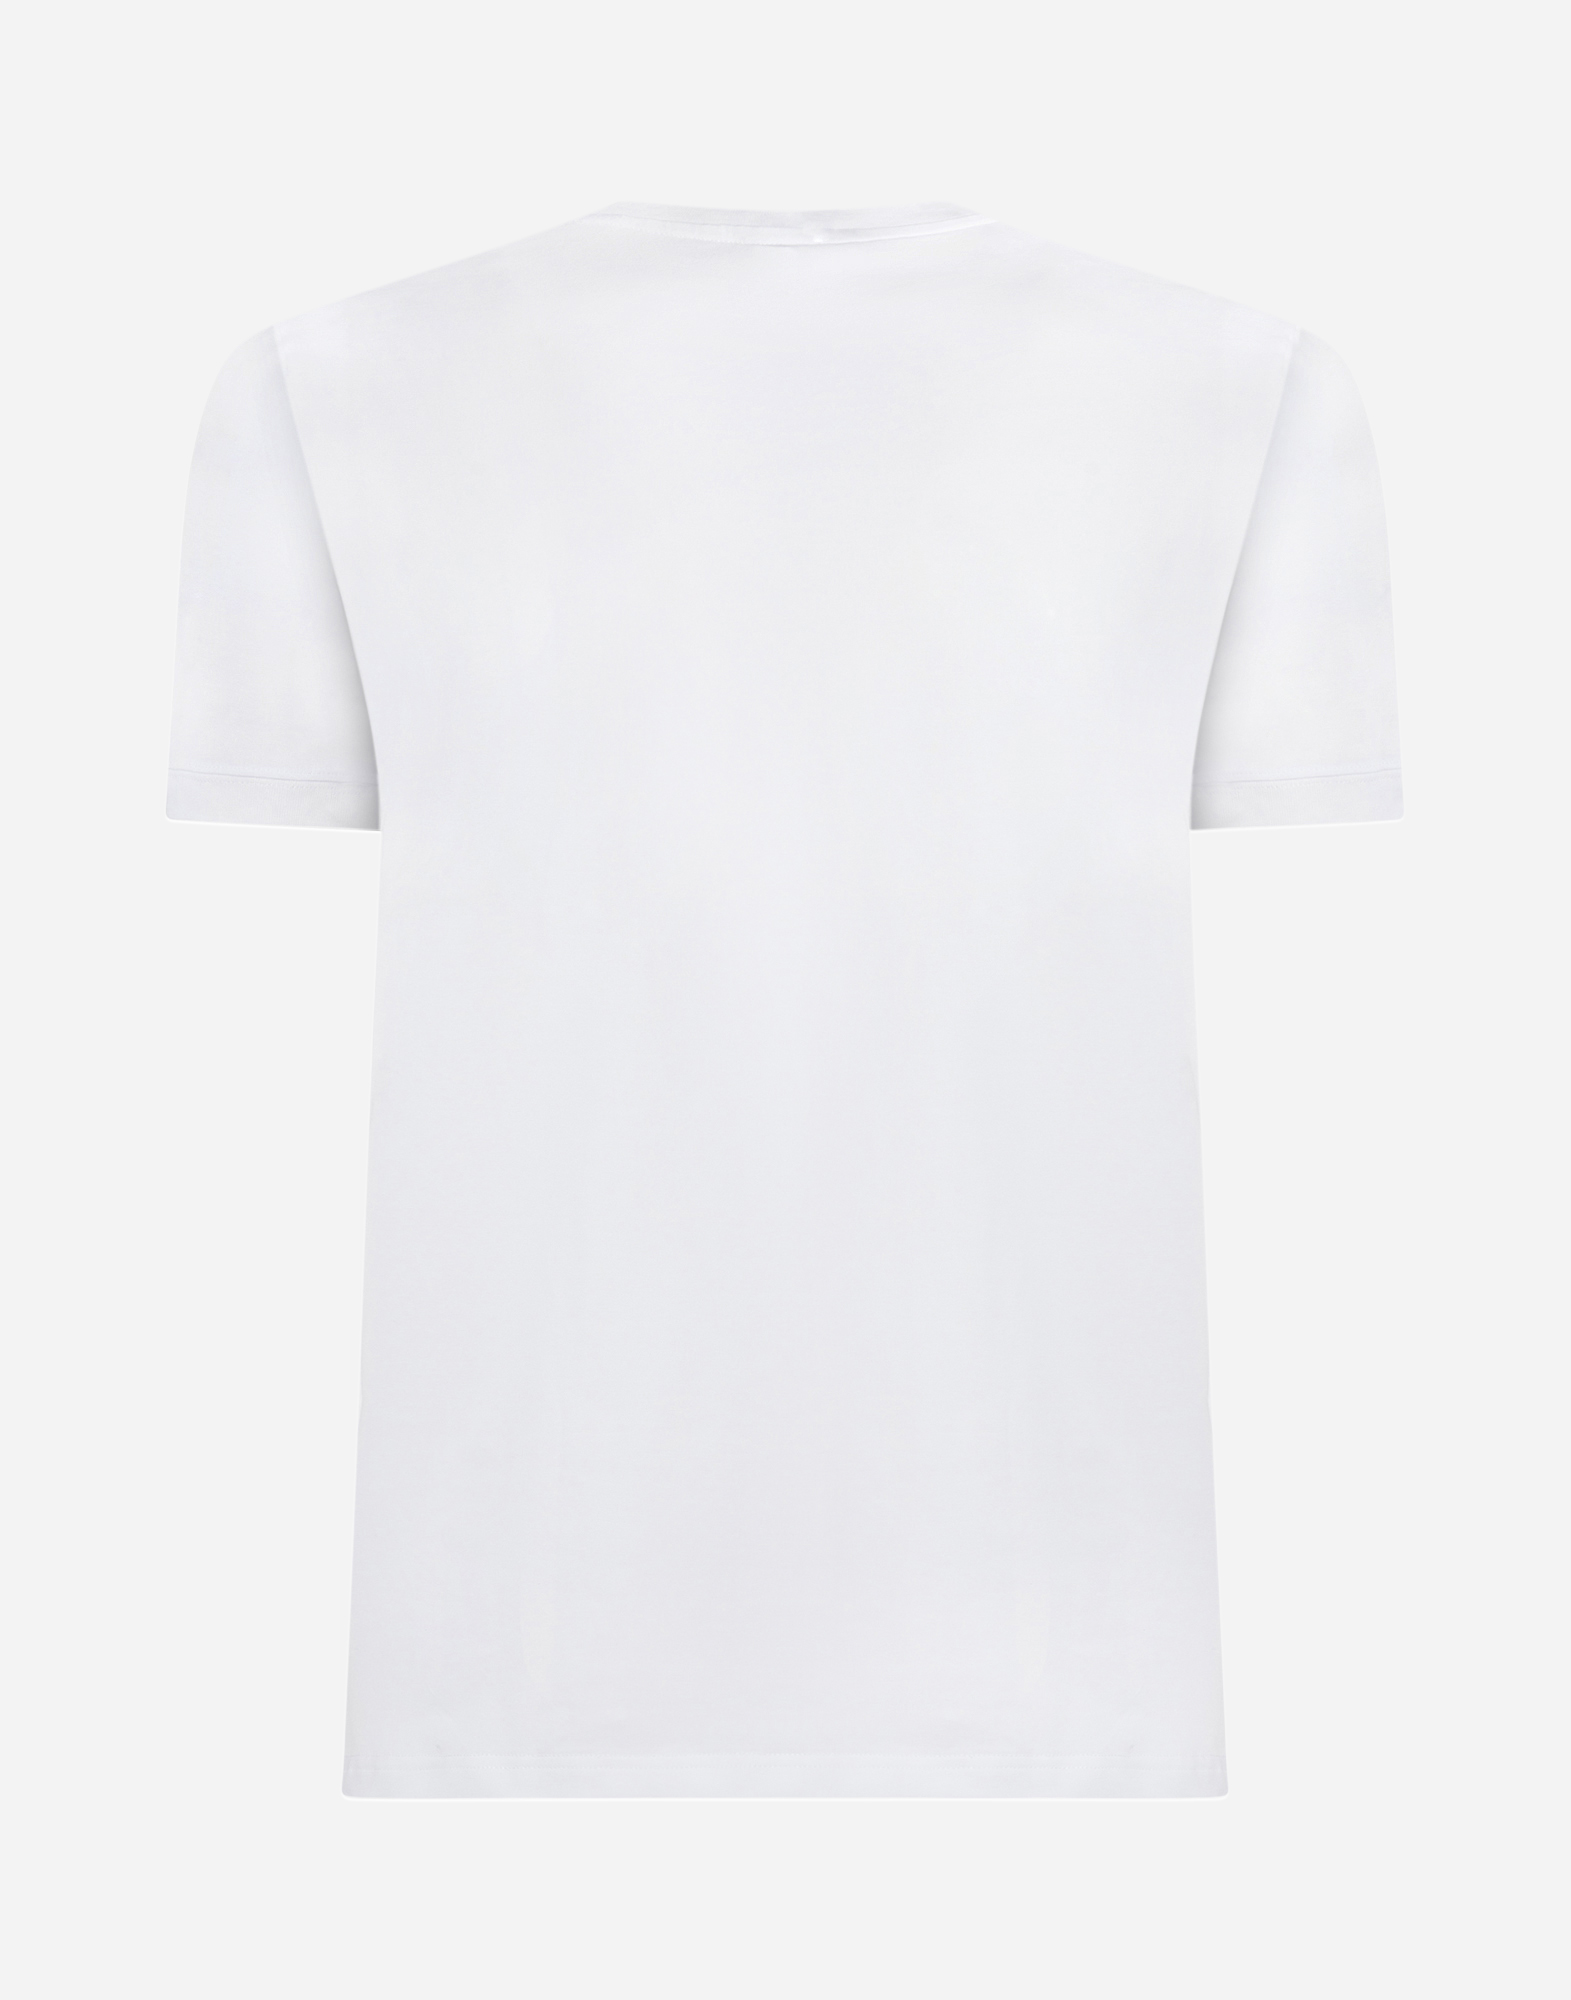 Dolce & Gabbana CREW NECK T-SHIRT IN COTTON WITH EMBROIDERY